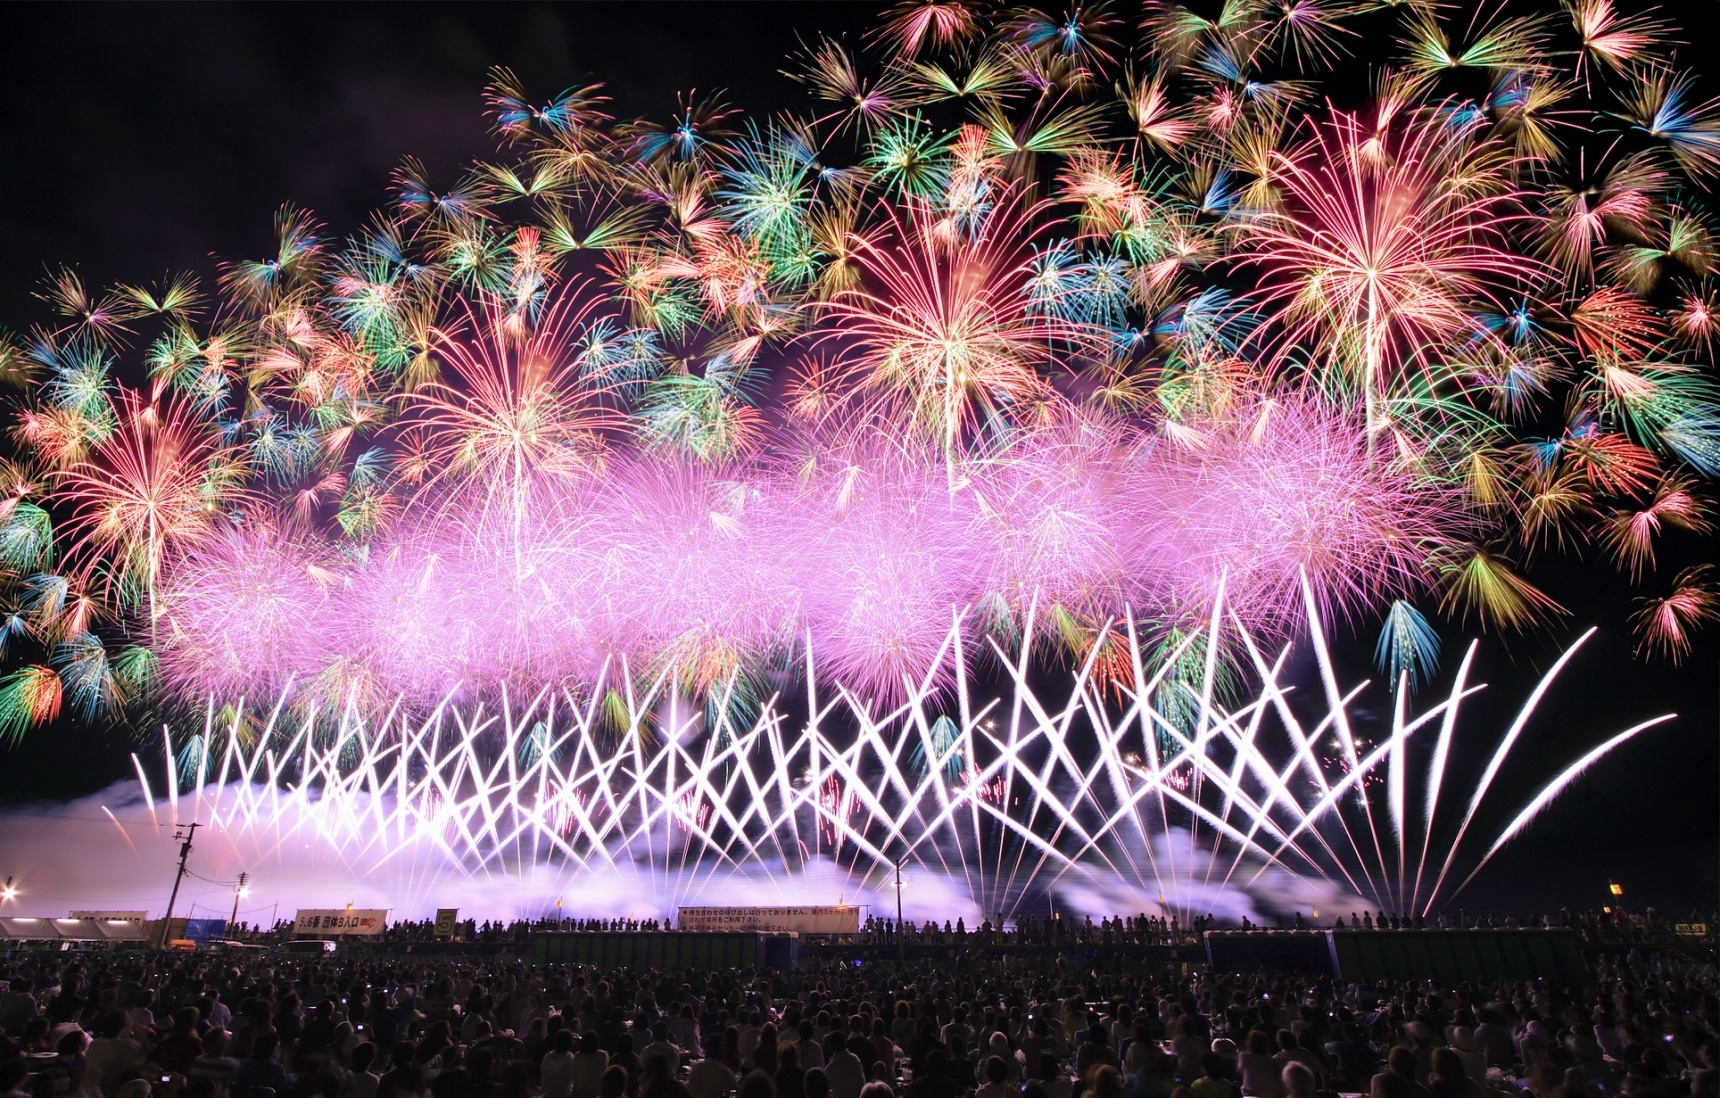 Japan's Most Amazing Summer Fireworks Festival